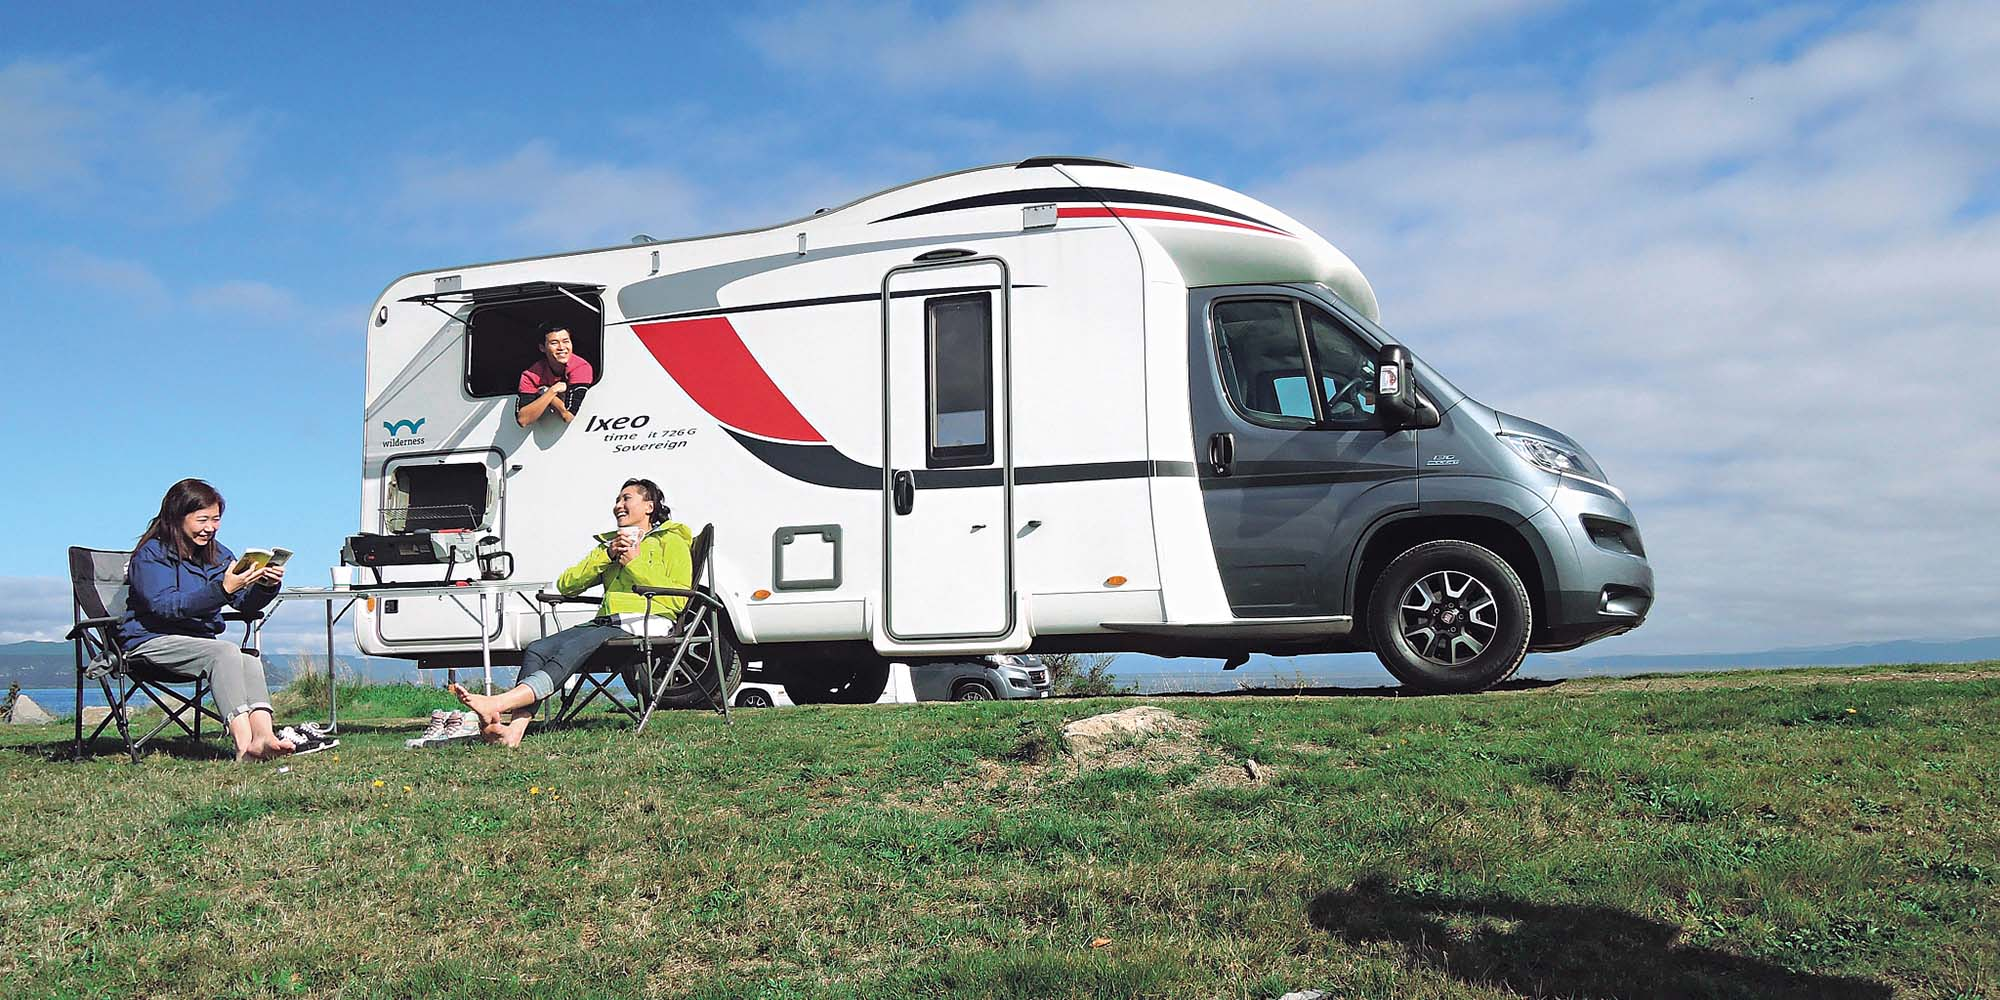 Get amazing journey with a RV!